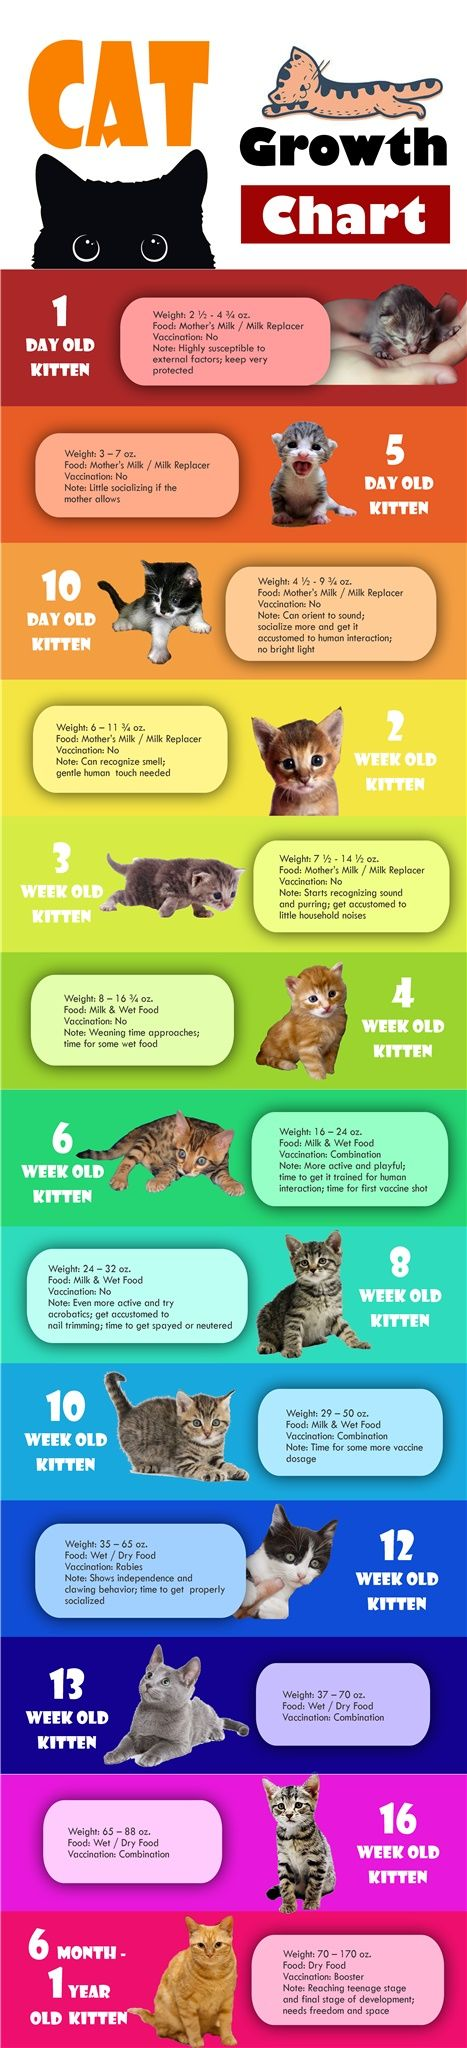 [Infographic] Kitten Cat Growth Chart by Age, Weight and Food Source: http://best1x.com/kitten-cat-growth-chart/